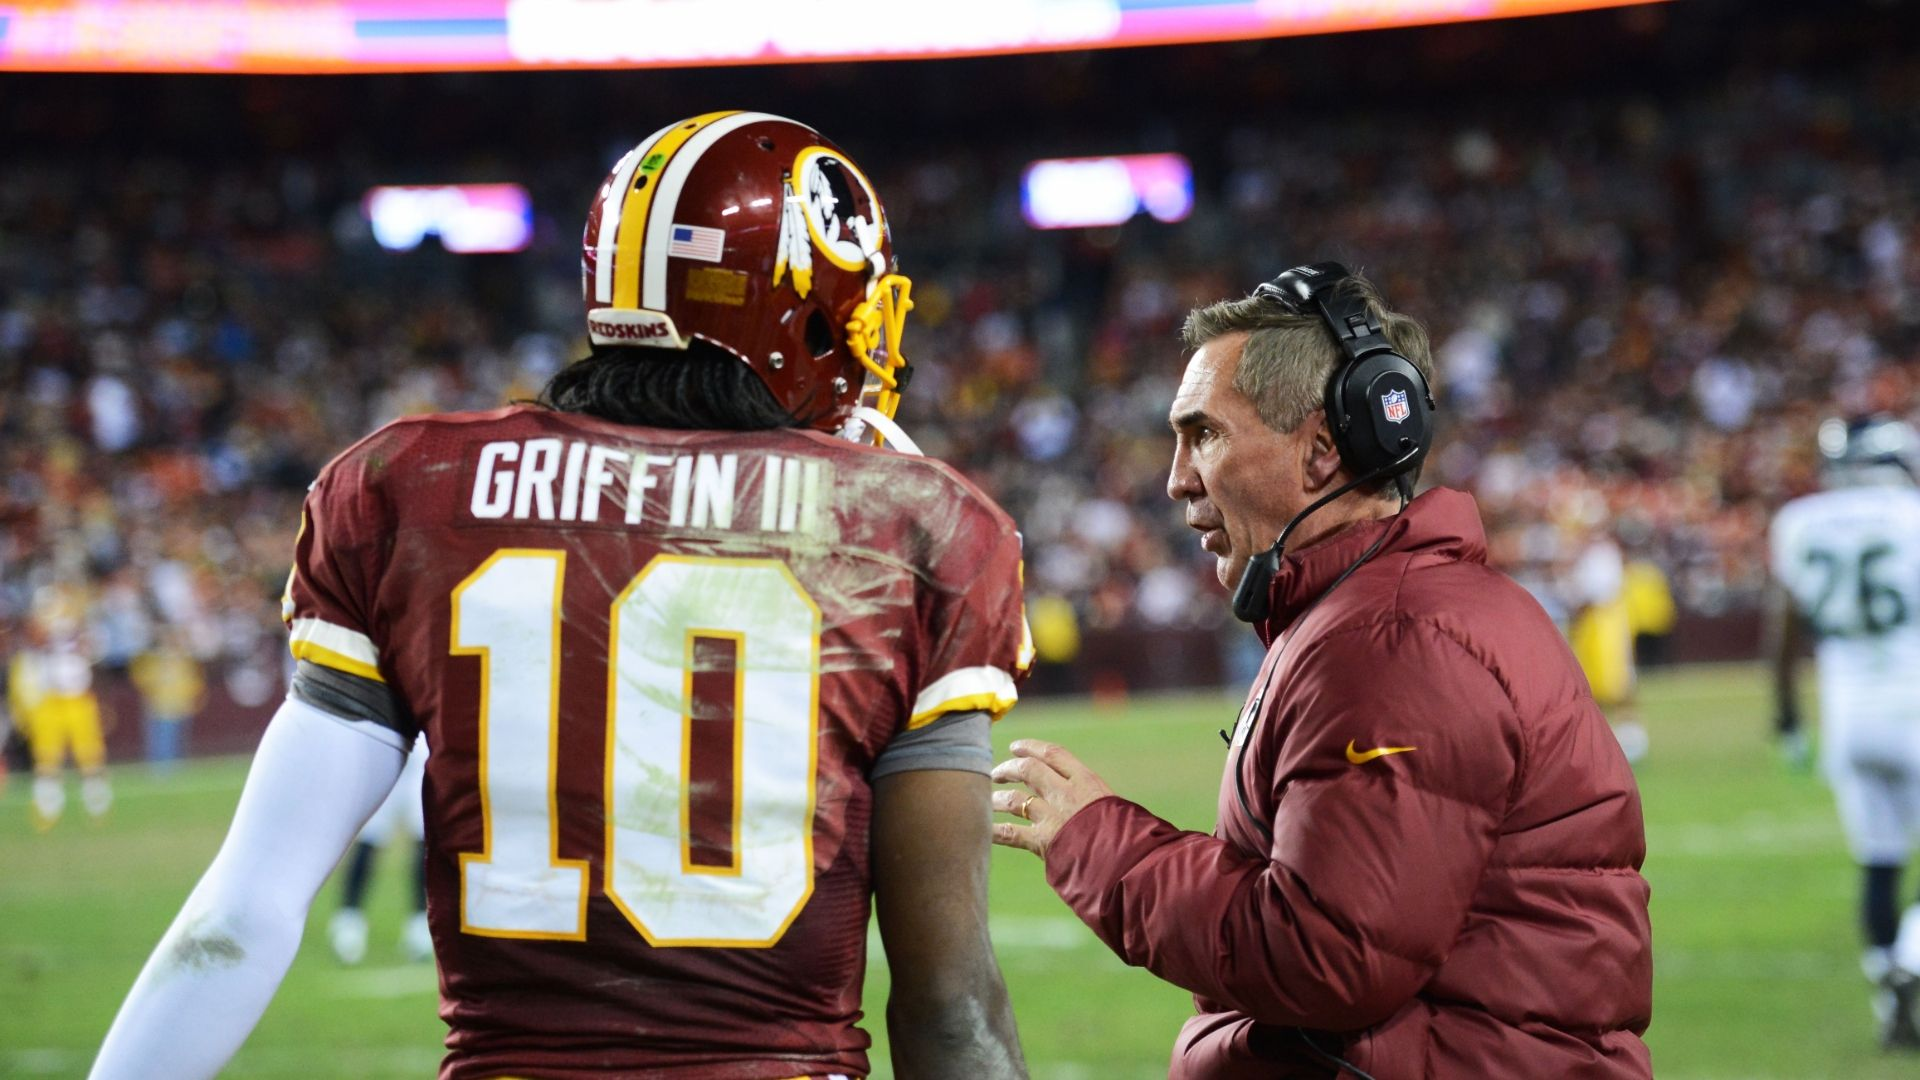 https://secure.espncdn.com/combiner/i?img=/media/motion/2016/0330/dm_160330_nfl_shanahan_advice_rg3_headline/dm_160330_nfl_shanahan_advice_rg3_headline.jpg